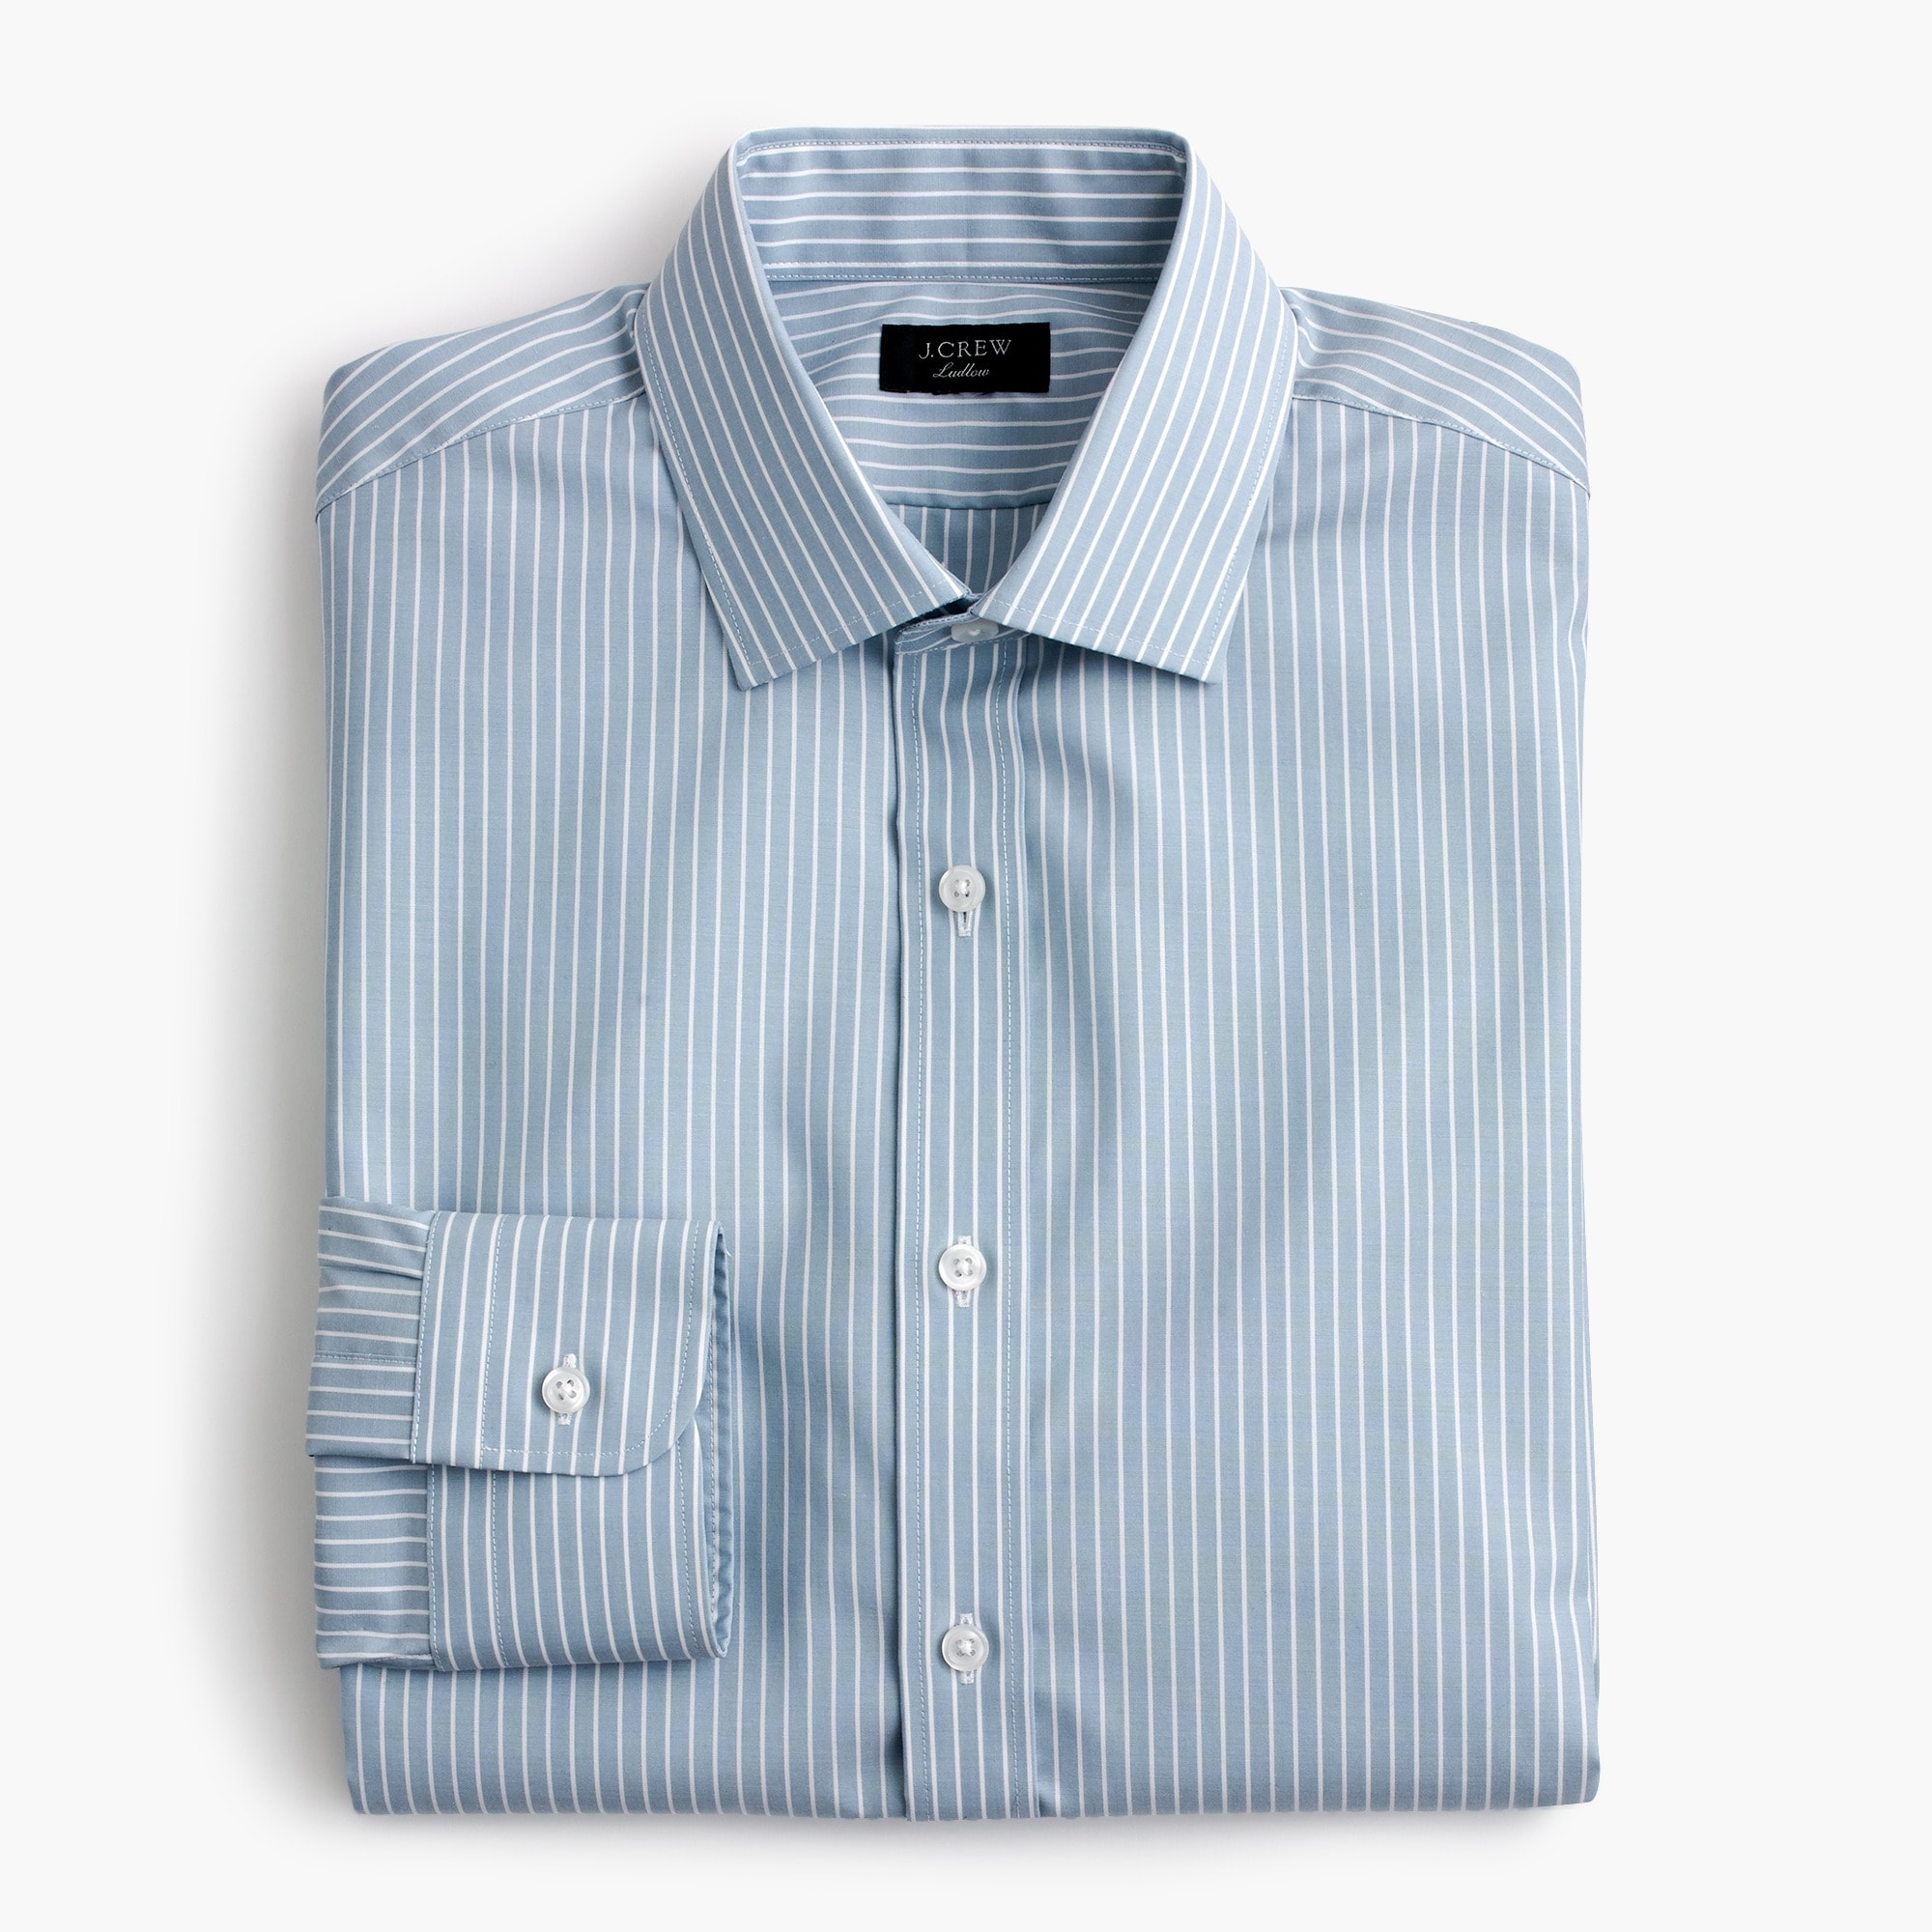 Image 1 for Ludlow stretch two-ply easy-care cotton dress shirt in blue stripe